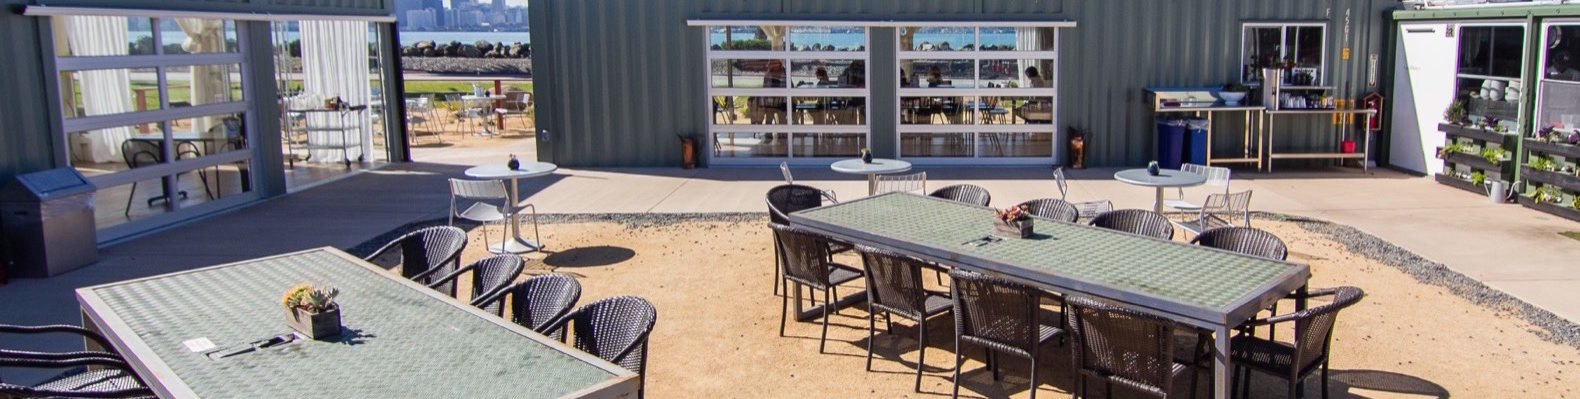 outdoor dining area surrounded by shipping containers